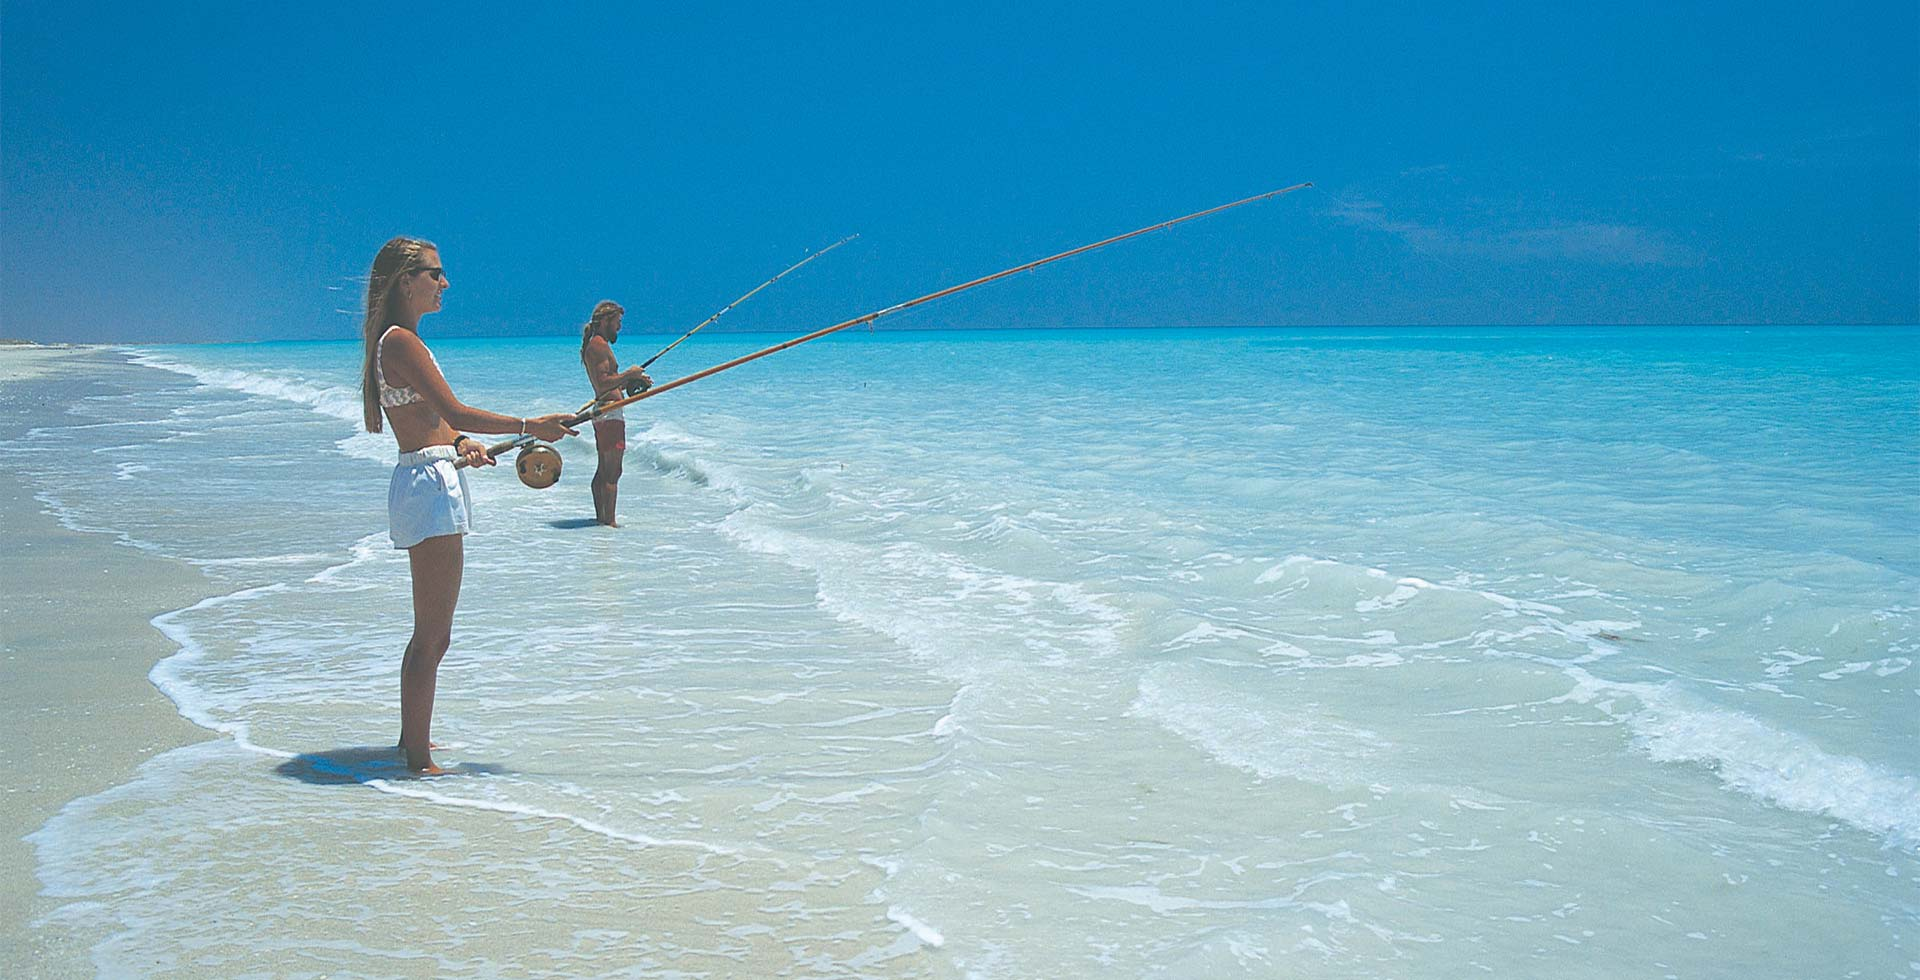 Spend the day fishing at 80 Mile beach near Port Hedland